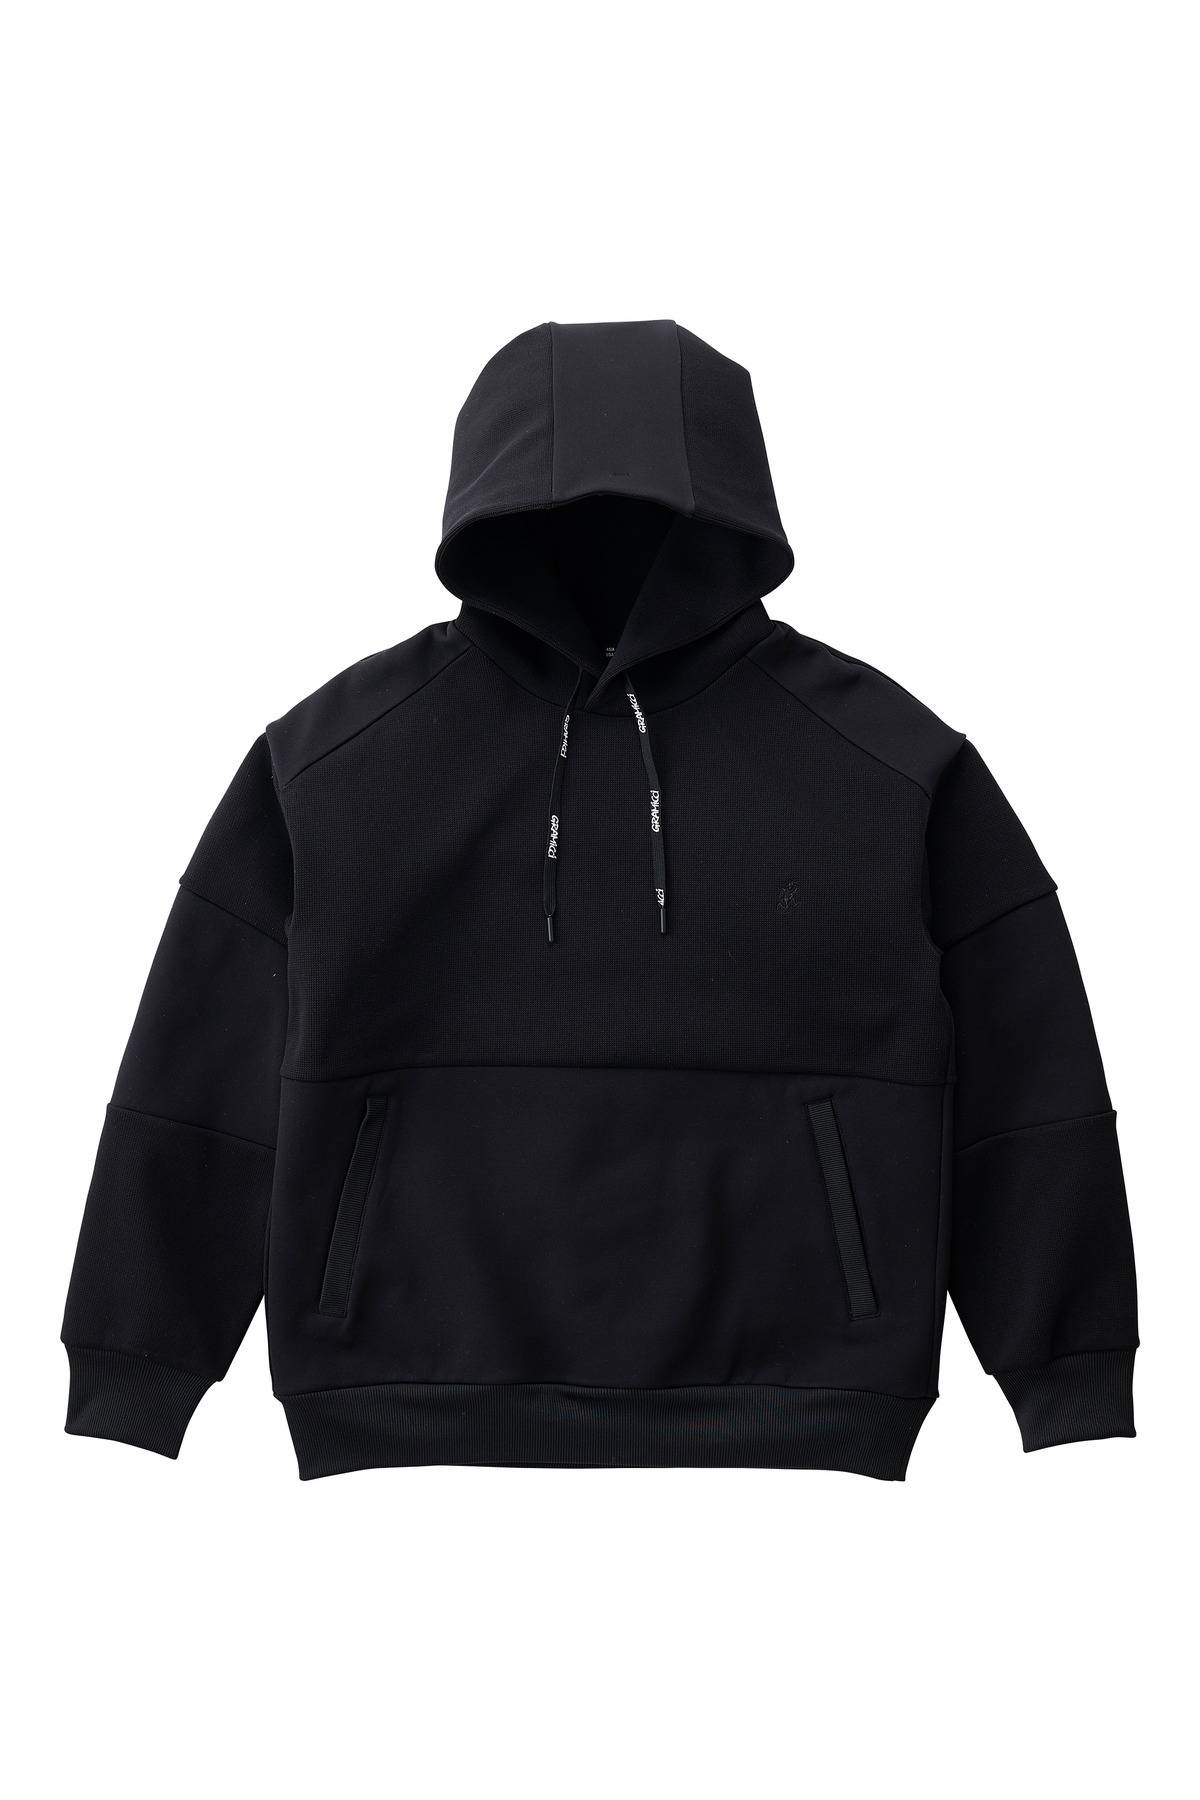 QUARTER KNIT HOODY BLACK